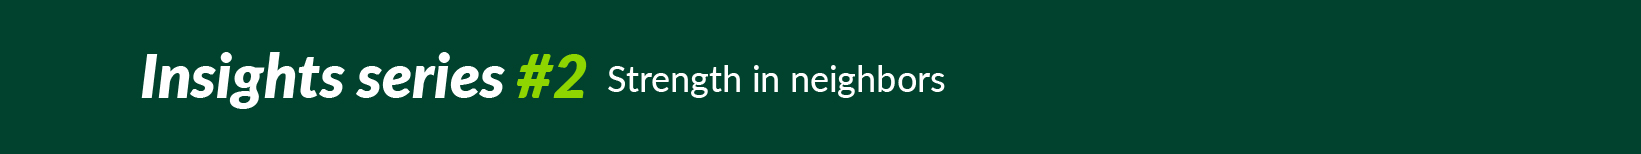 Insights series #2: Strength in neighbors